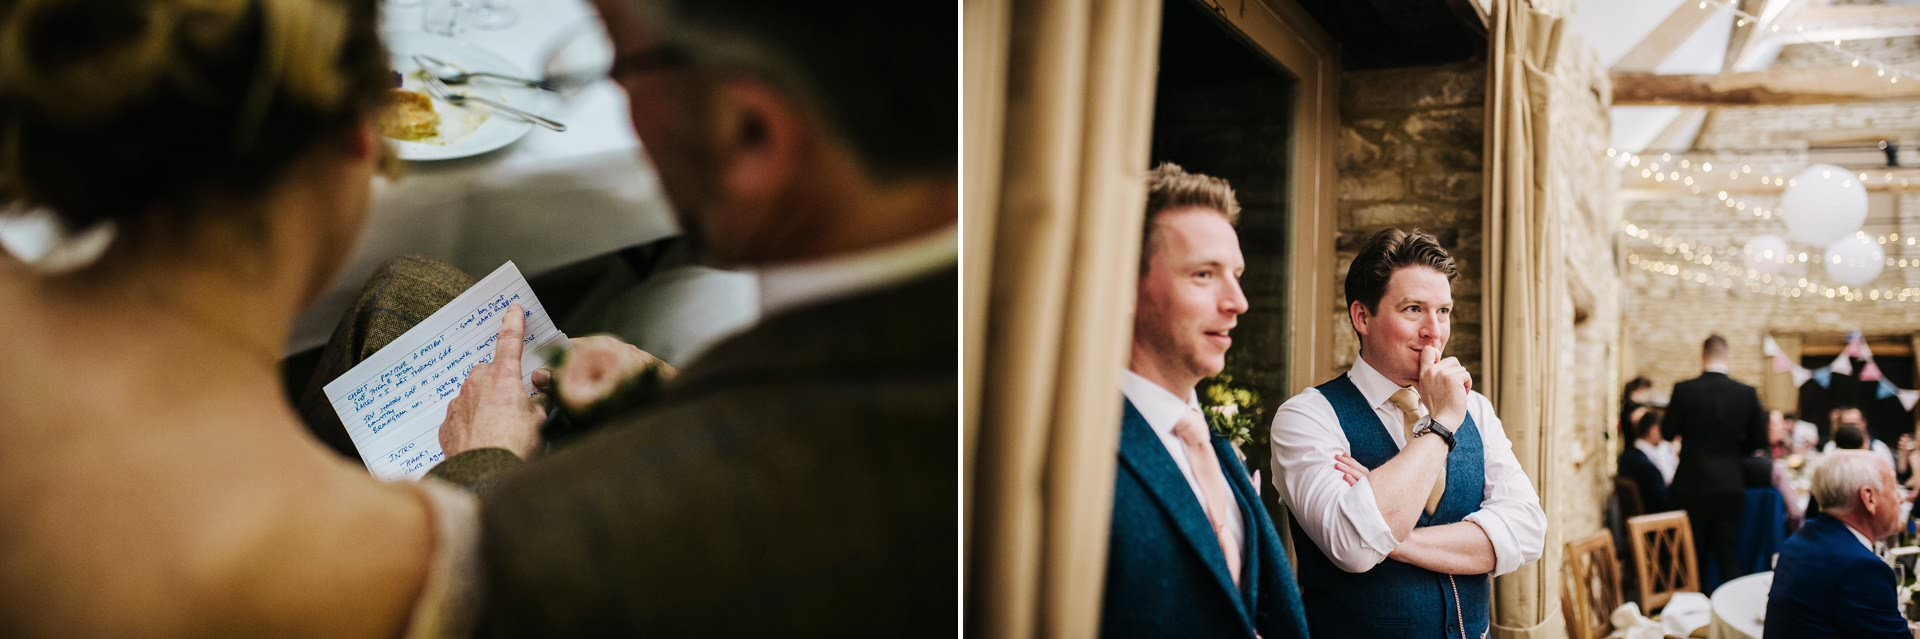 Caswell House Wedding Photographer - Jessica & Chris 79